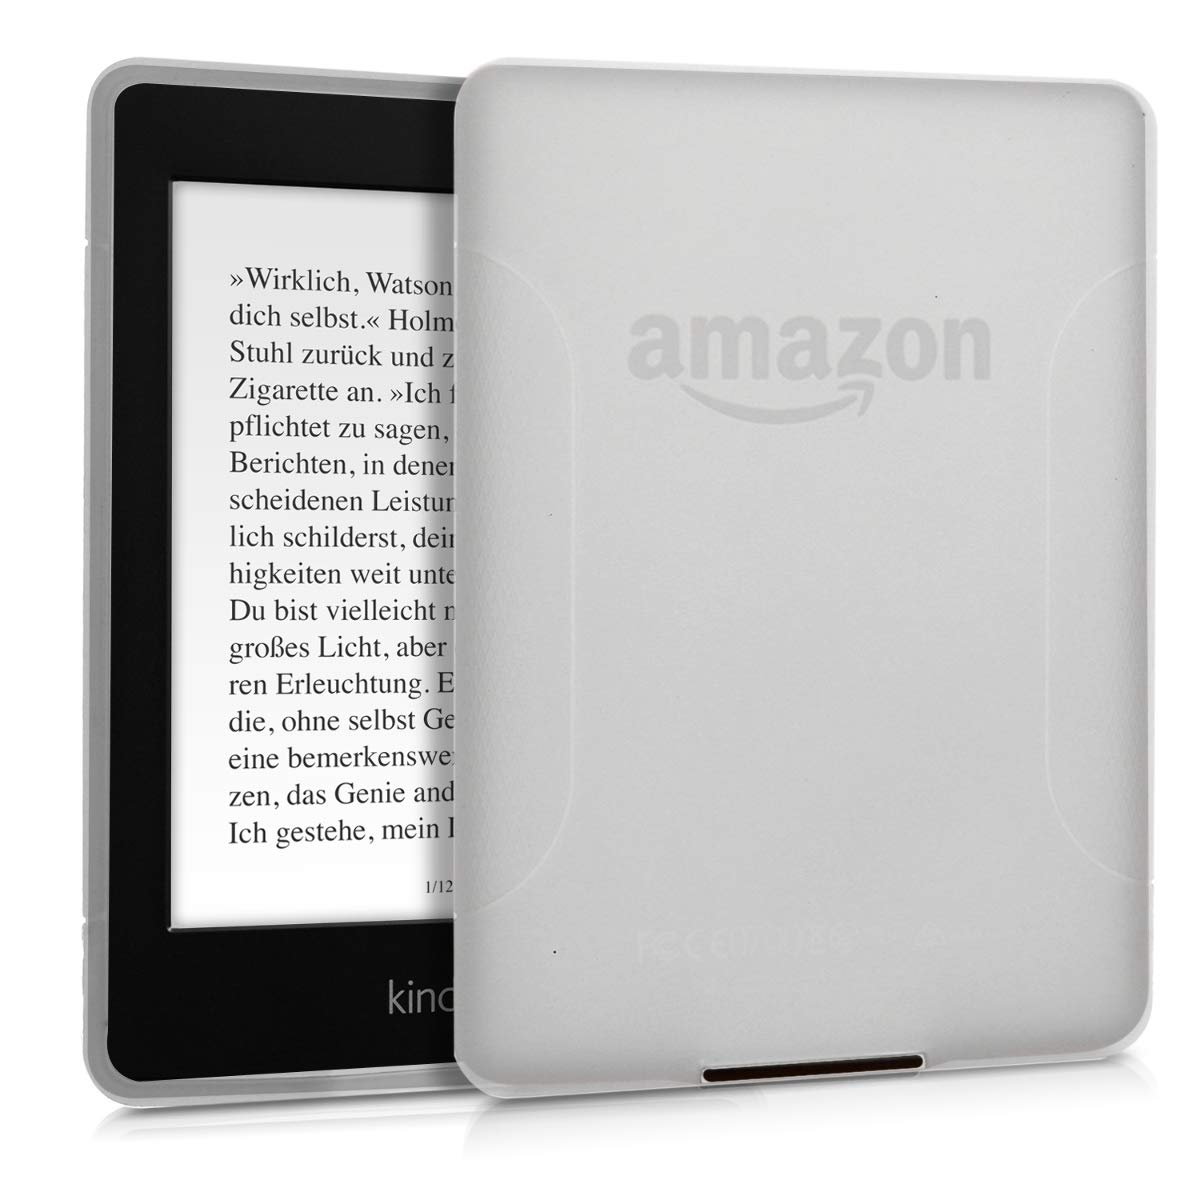 kwmobile Cover for Amazon Kindle Paperwhite - TPU Silicone case Protective Cover for eReader - Back Cover case in Matte Transparent